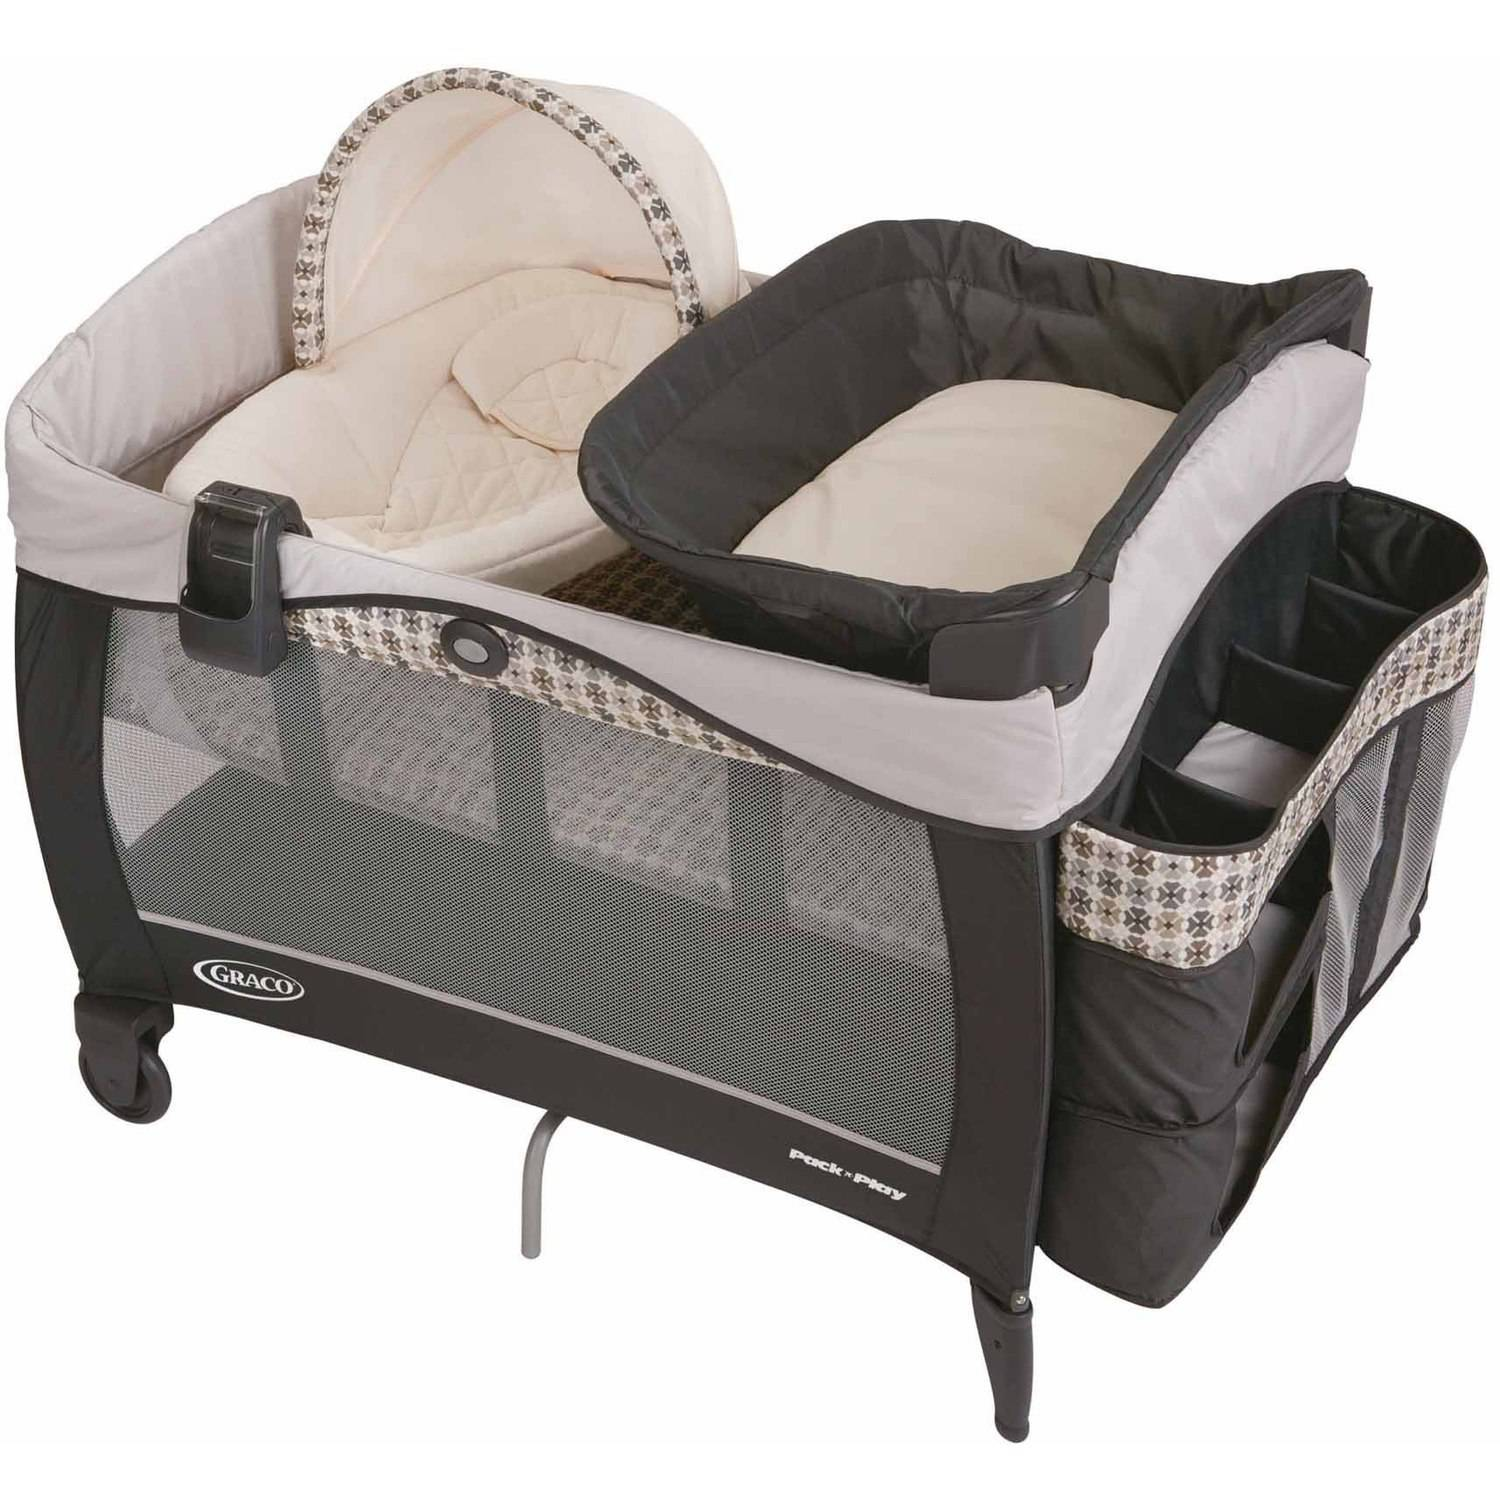 Graco Pack 'n Play Newborn Napper LX Play Pen, Vance by Graco